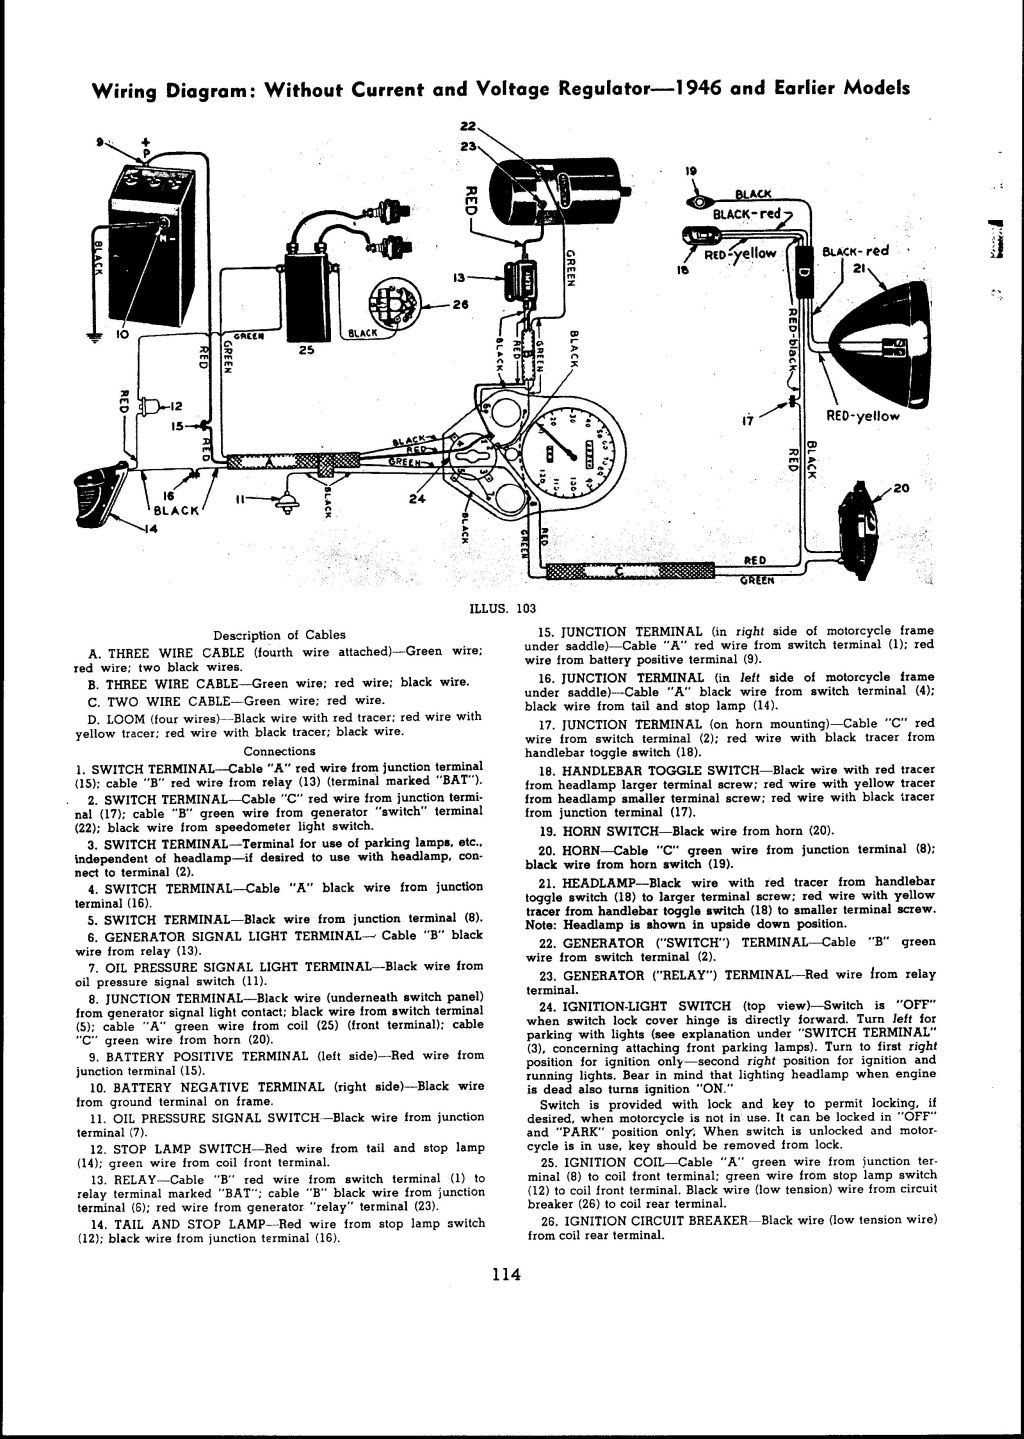 1950 Harley Davidson Wiring Diagram Simple Chrysler 1941 Wl Restoration Re The